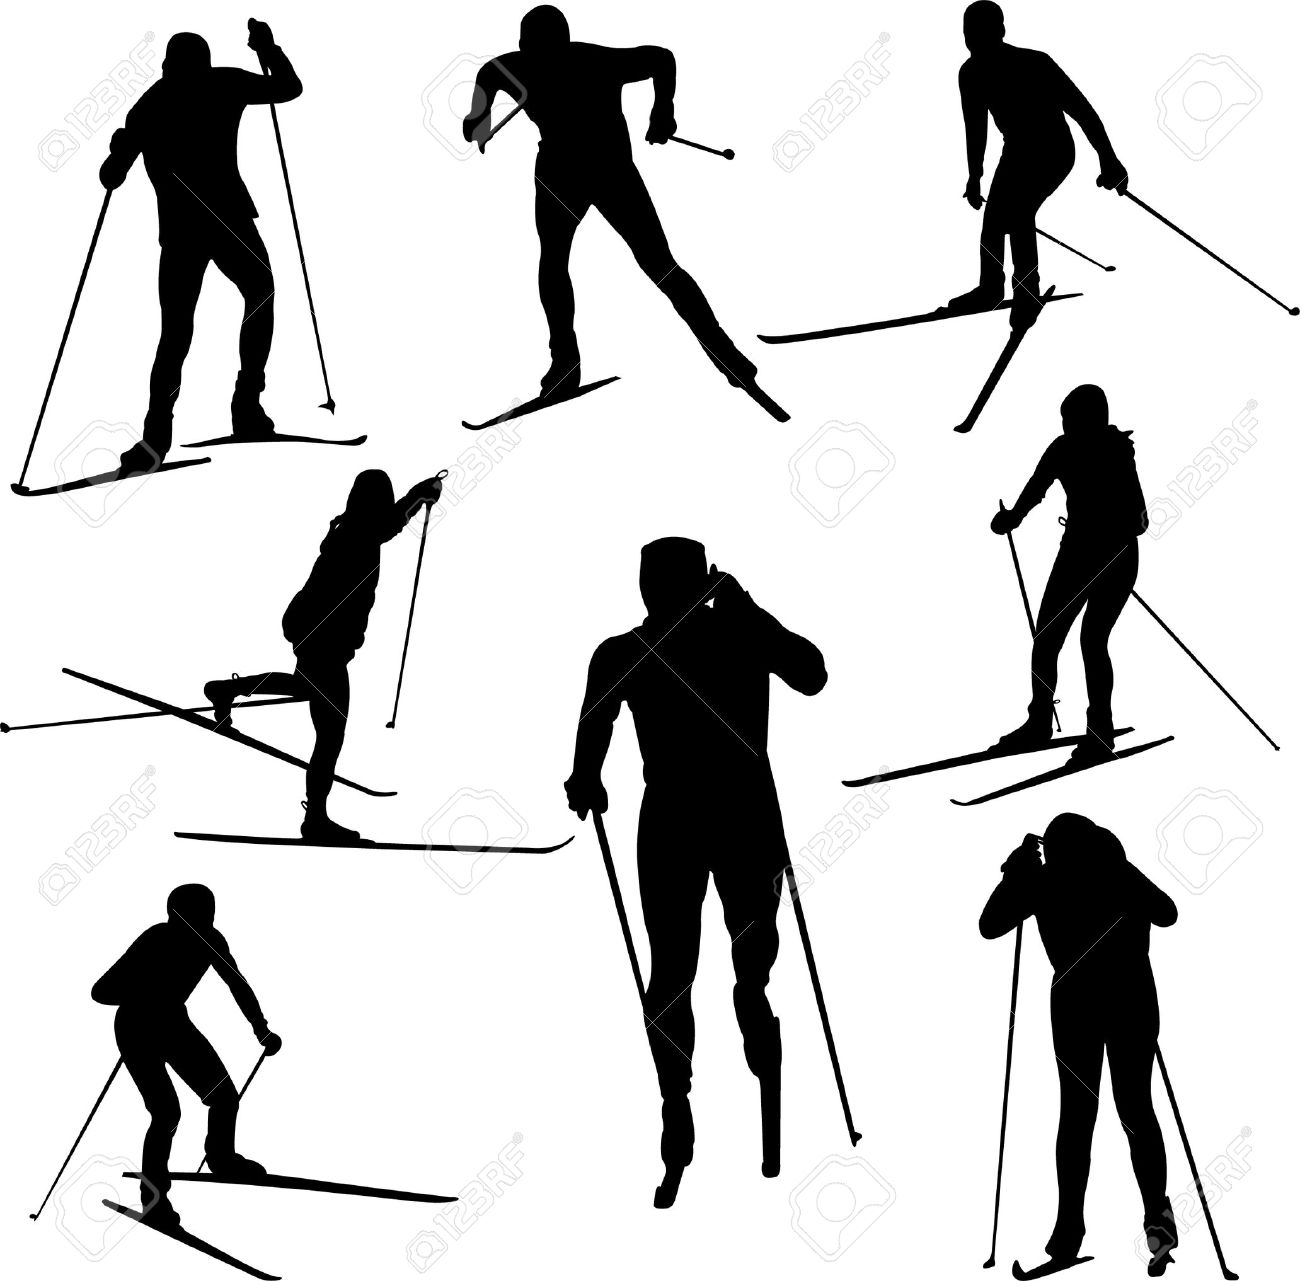 Nordic skier clipart.